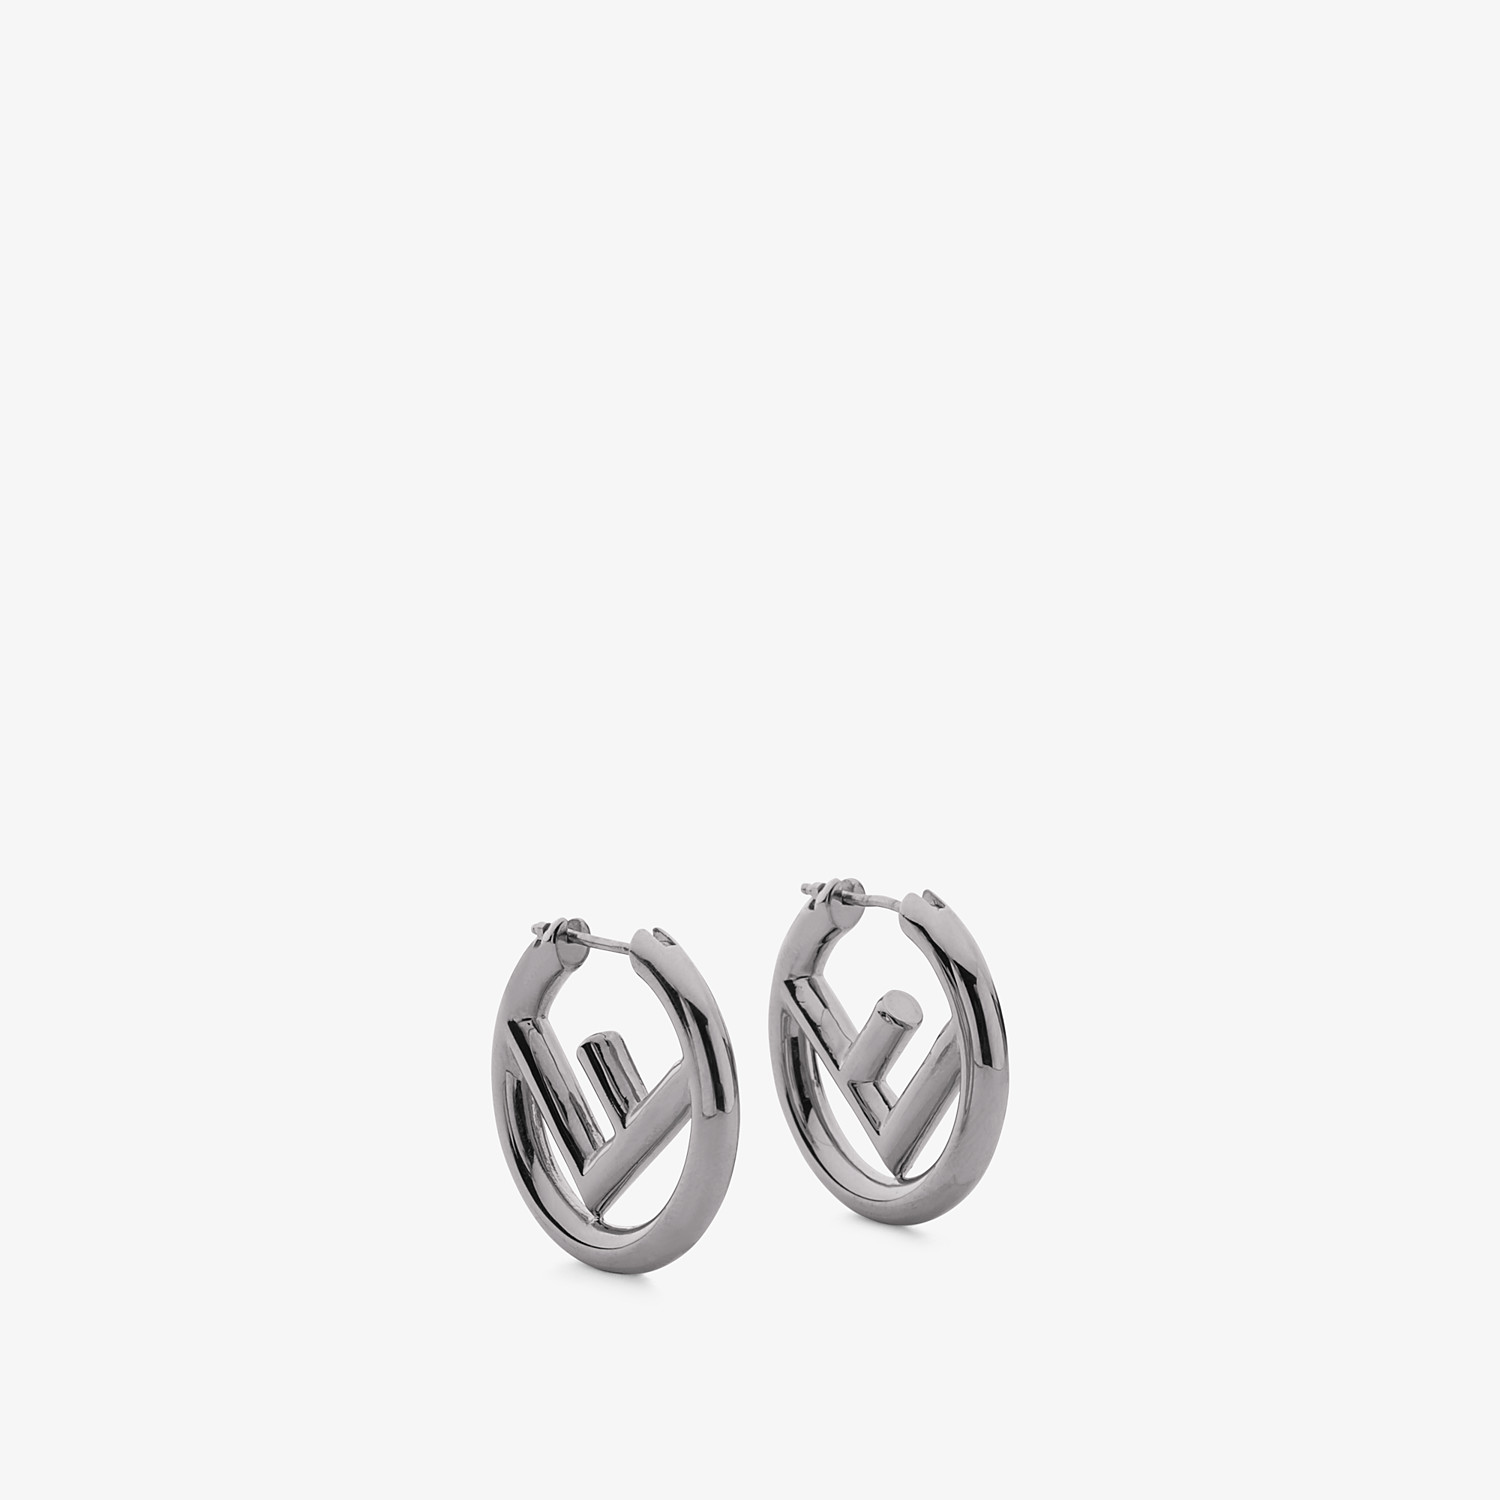 FENDI F IS FENDI EARRINGS - Ruthenium colour earrings - view 1 detail